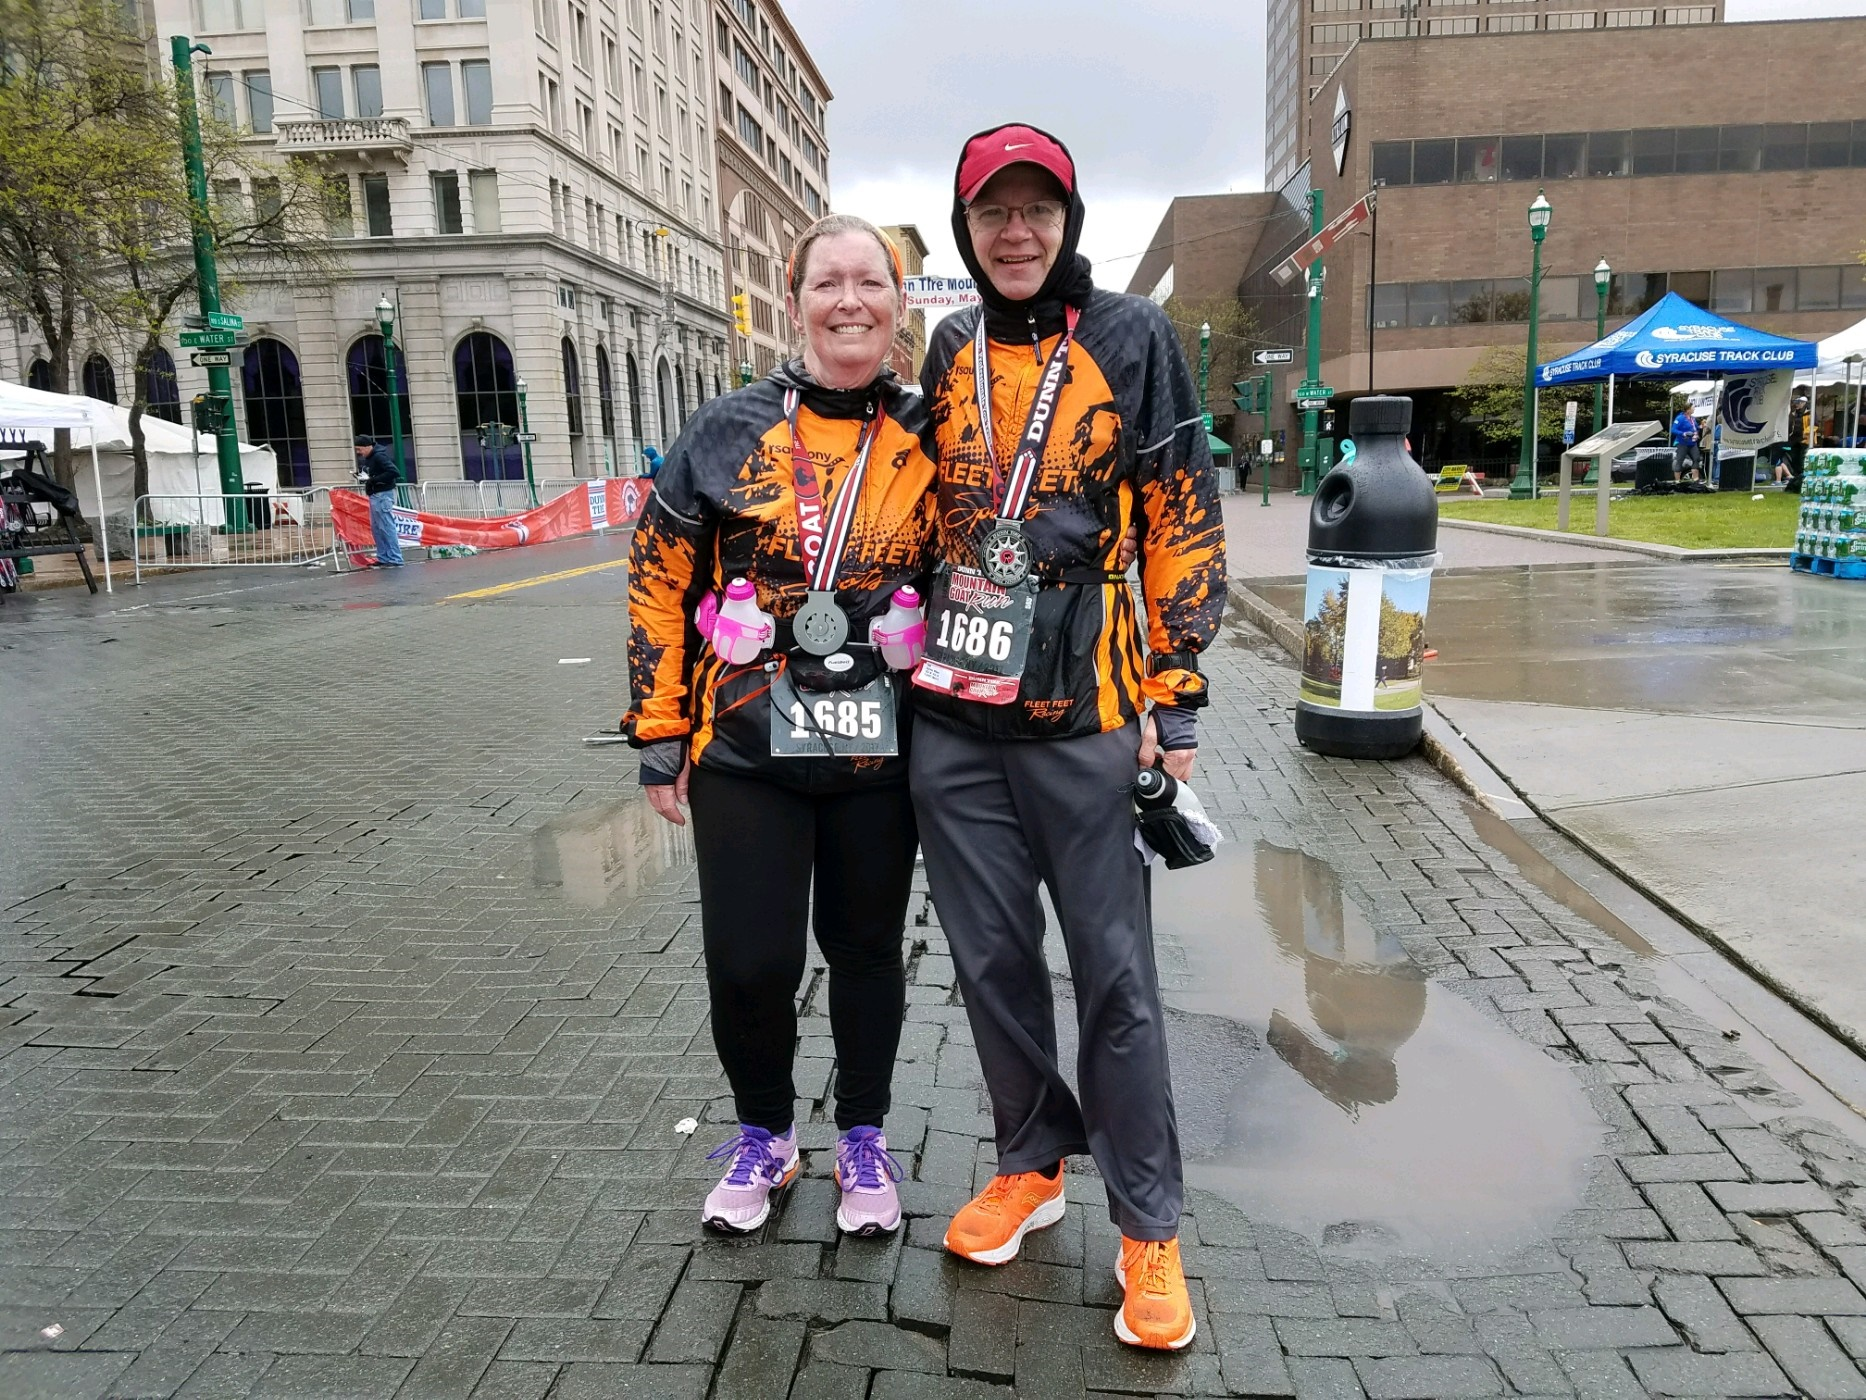 Donna and William Sparkes, who were inspired by the memory of Brendan Jackson to finish Sunday's Mountain Goat Run, in Syracuse. They were in the final handful of finishers on a raw, wet day. (Sean Kirst/submitted image)